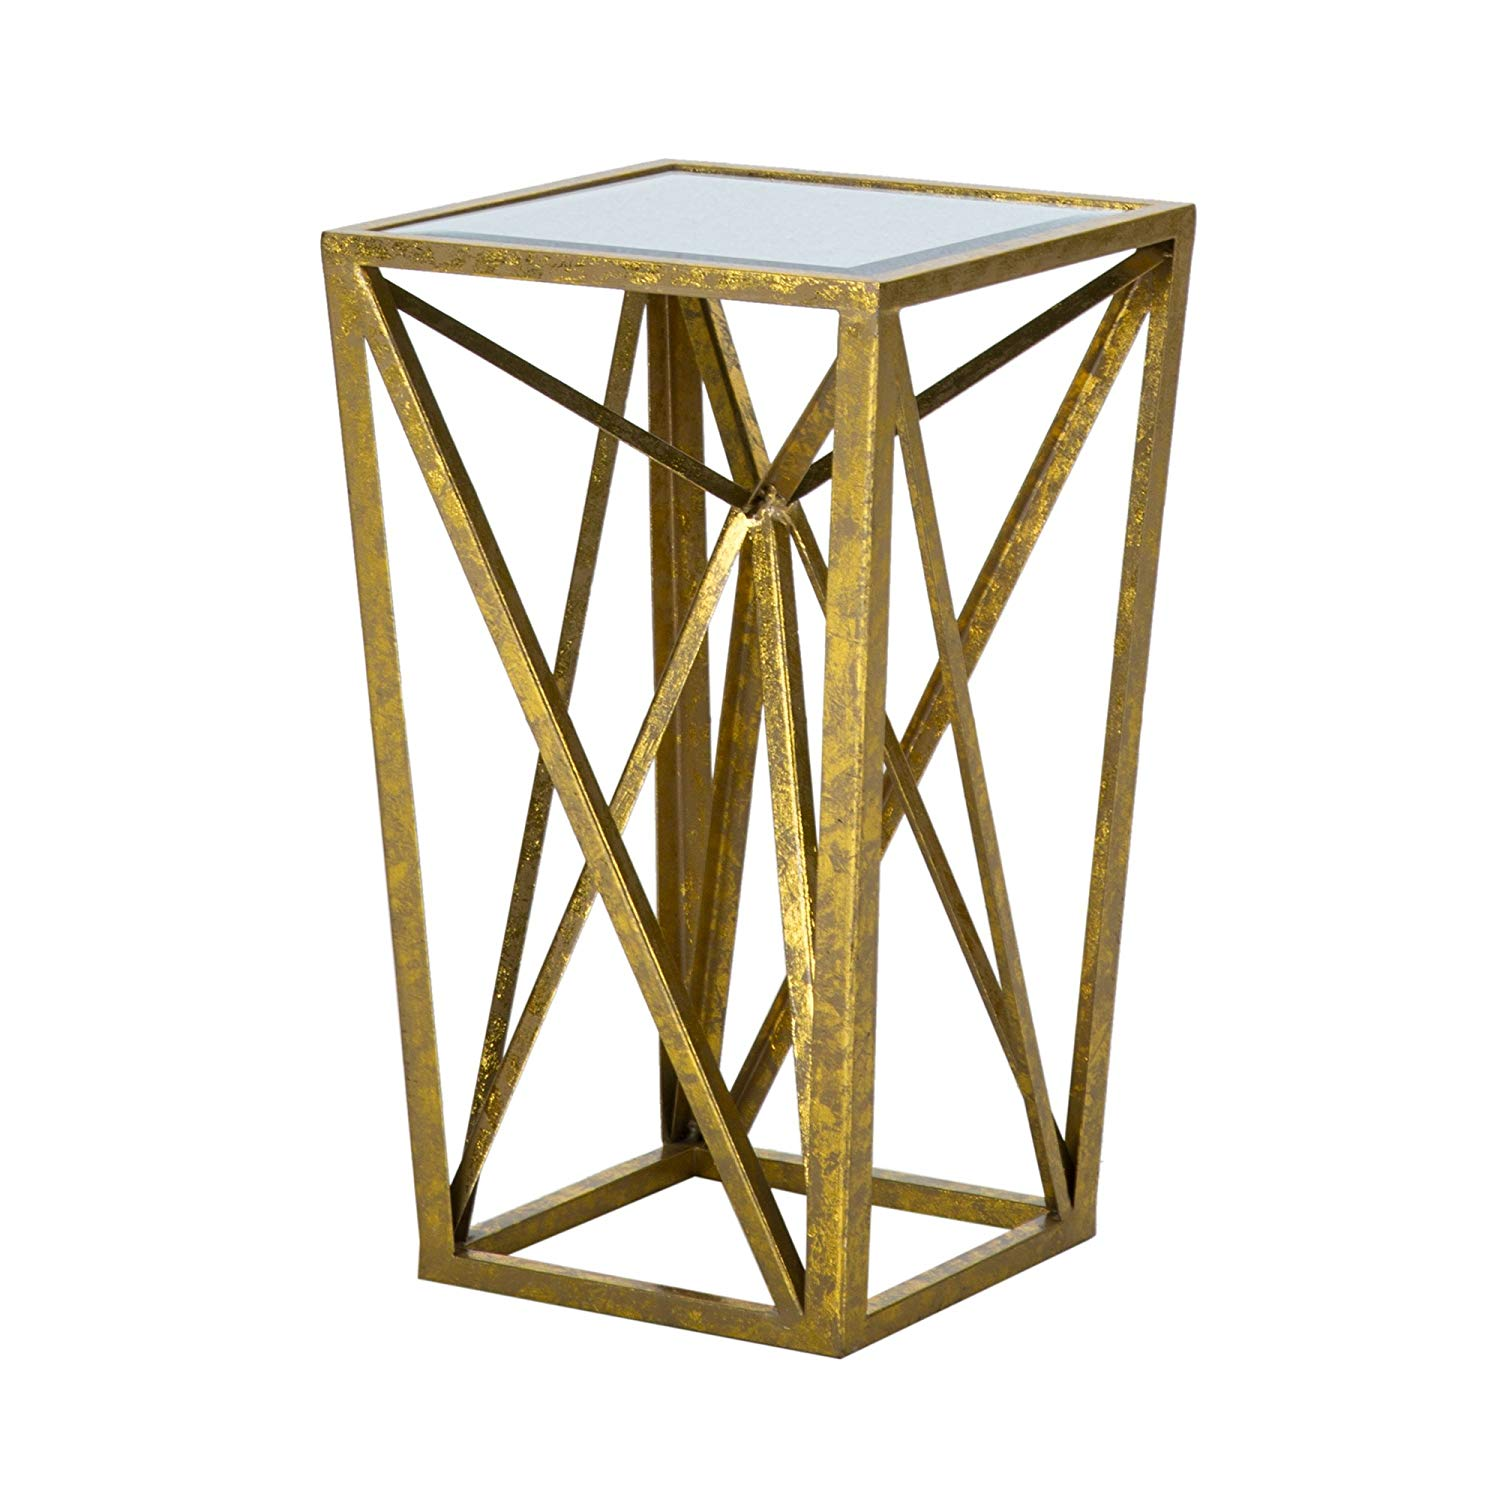 madison park zee accent tables mirror glass metal drum shaped table side gold angular design modern style end piece top hollow round stackable outdoor waterproof patio chair